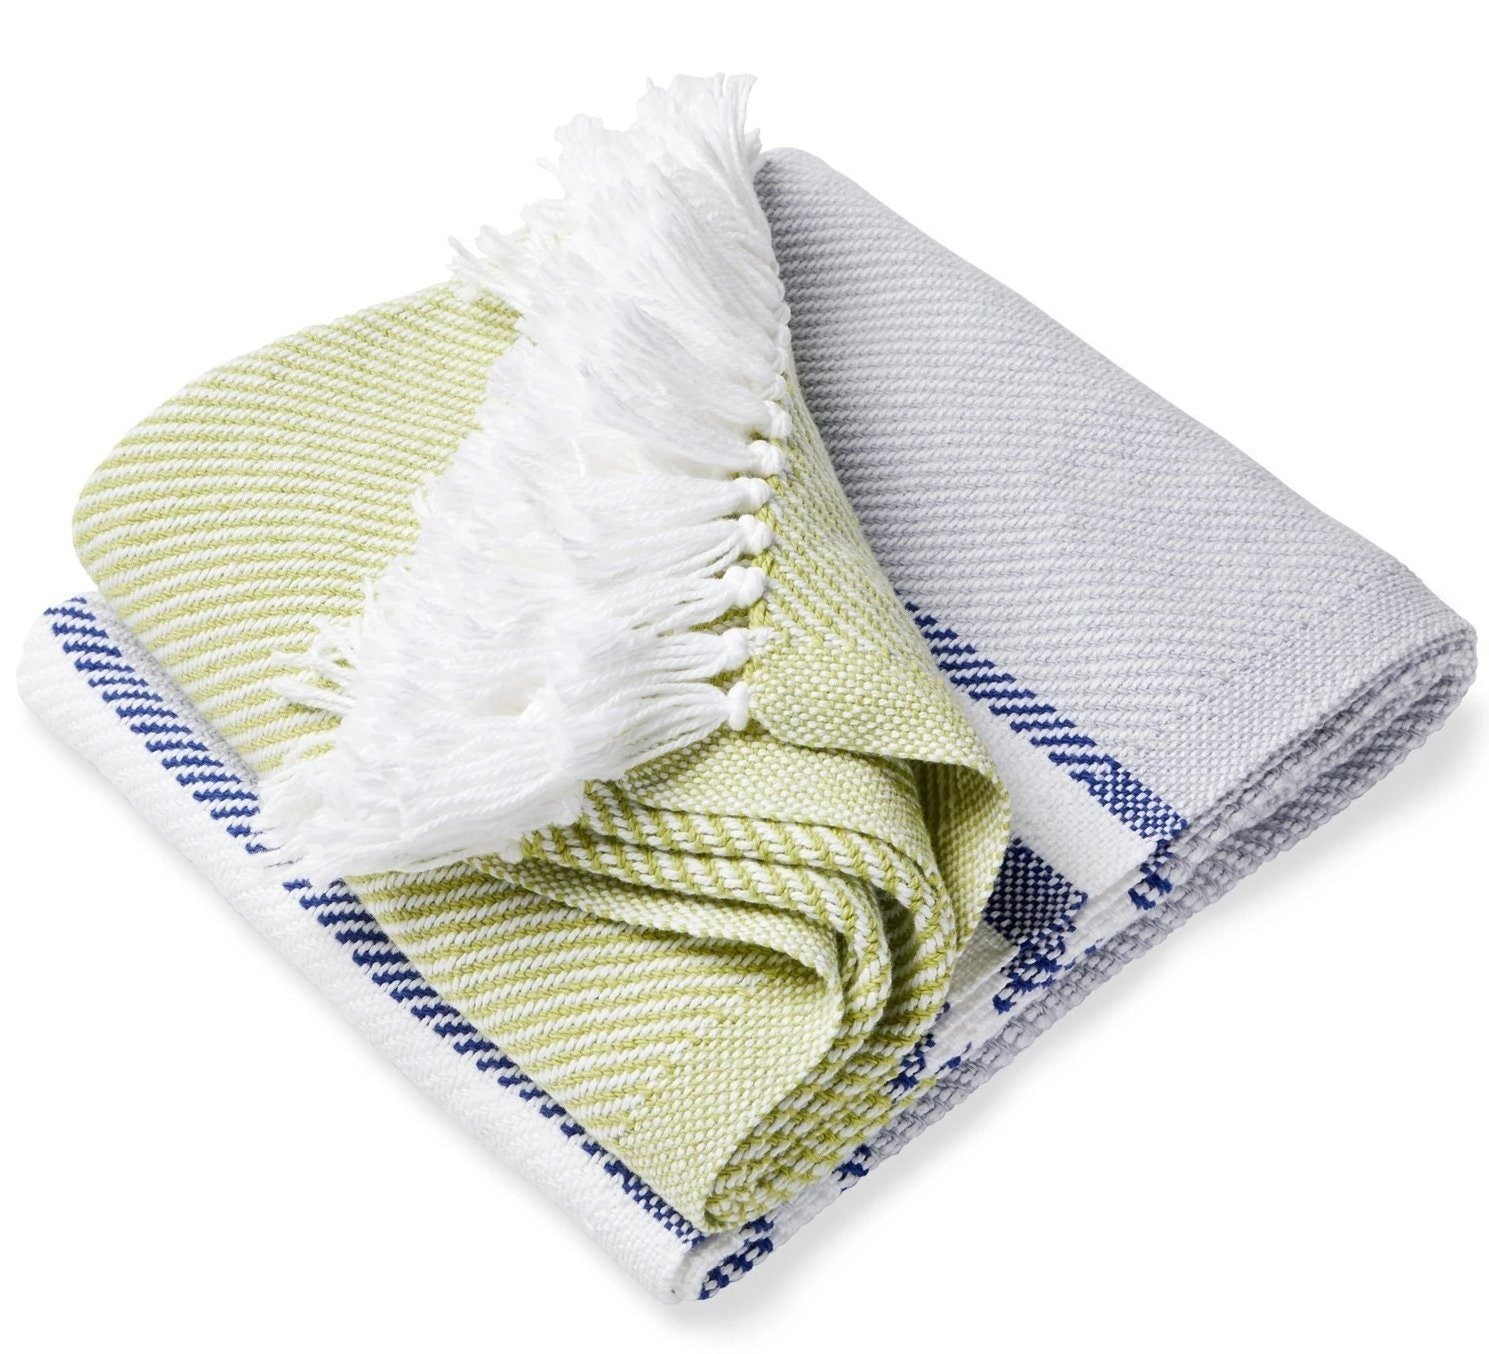 Allagash Dove Gray, Navy & Green Throw by Brahms Mount